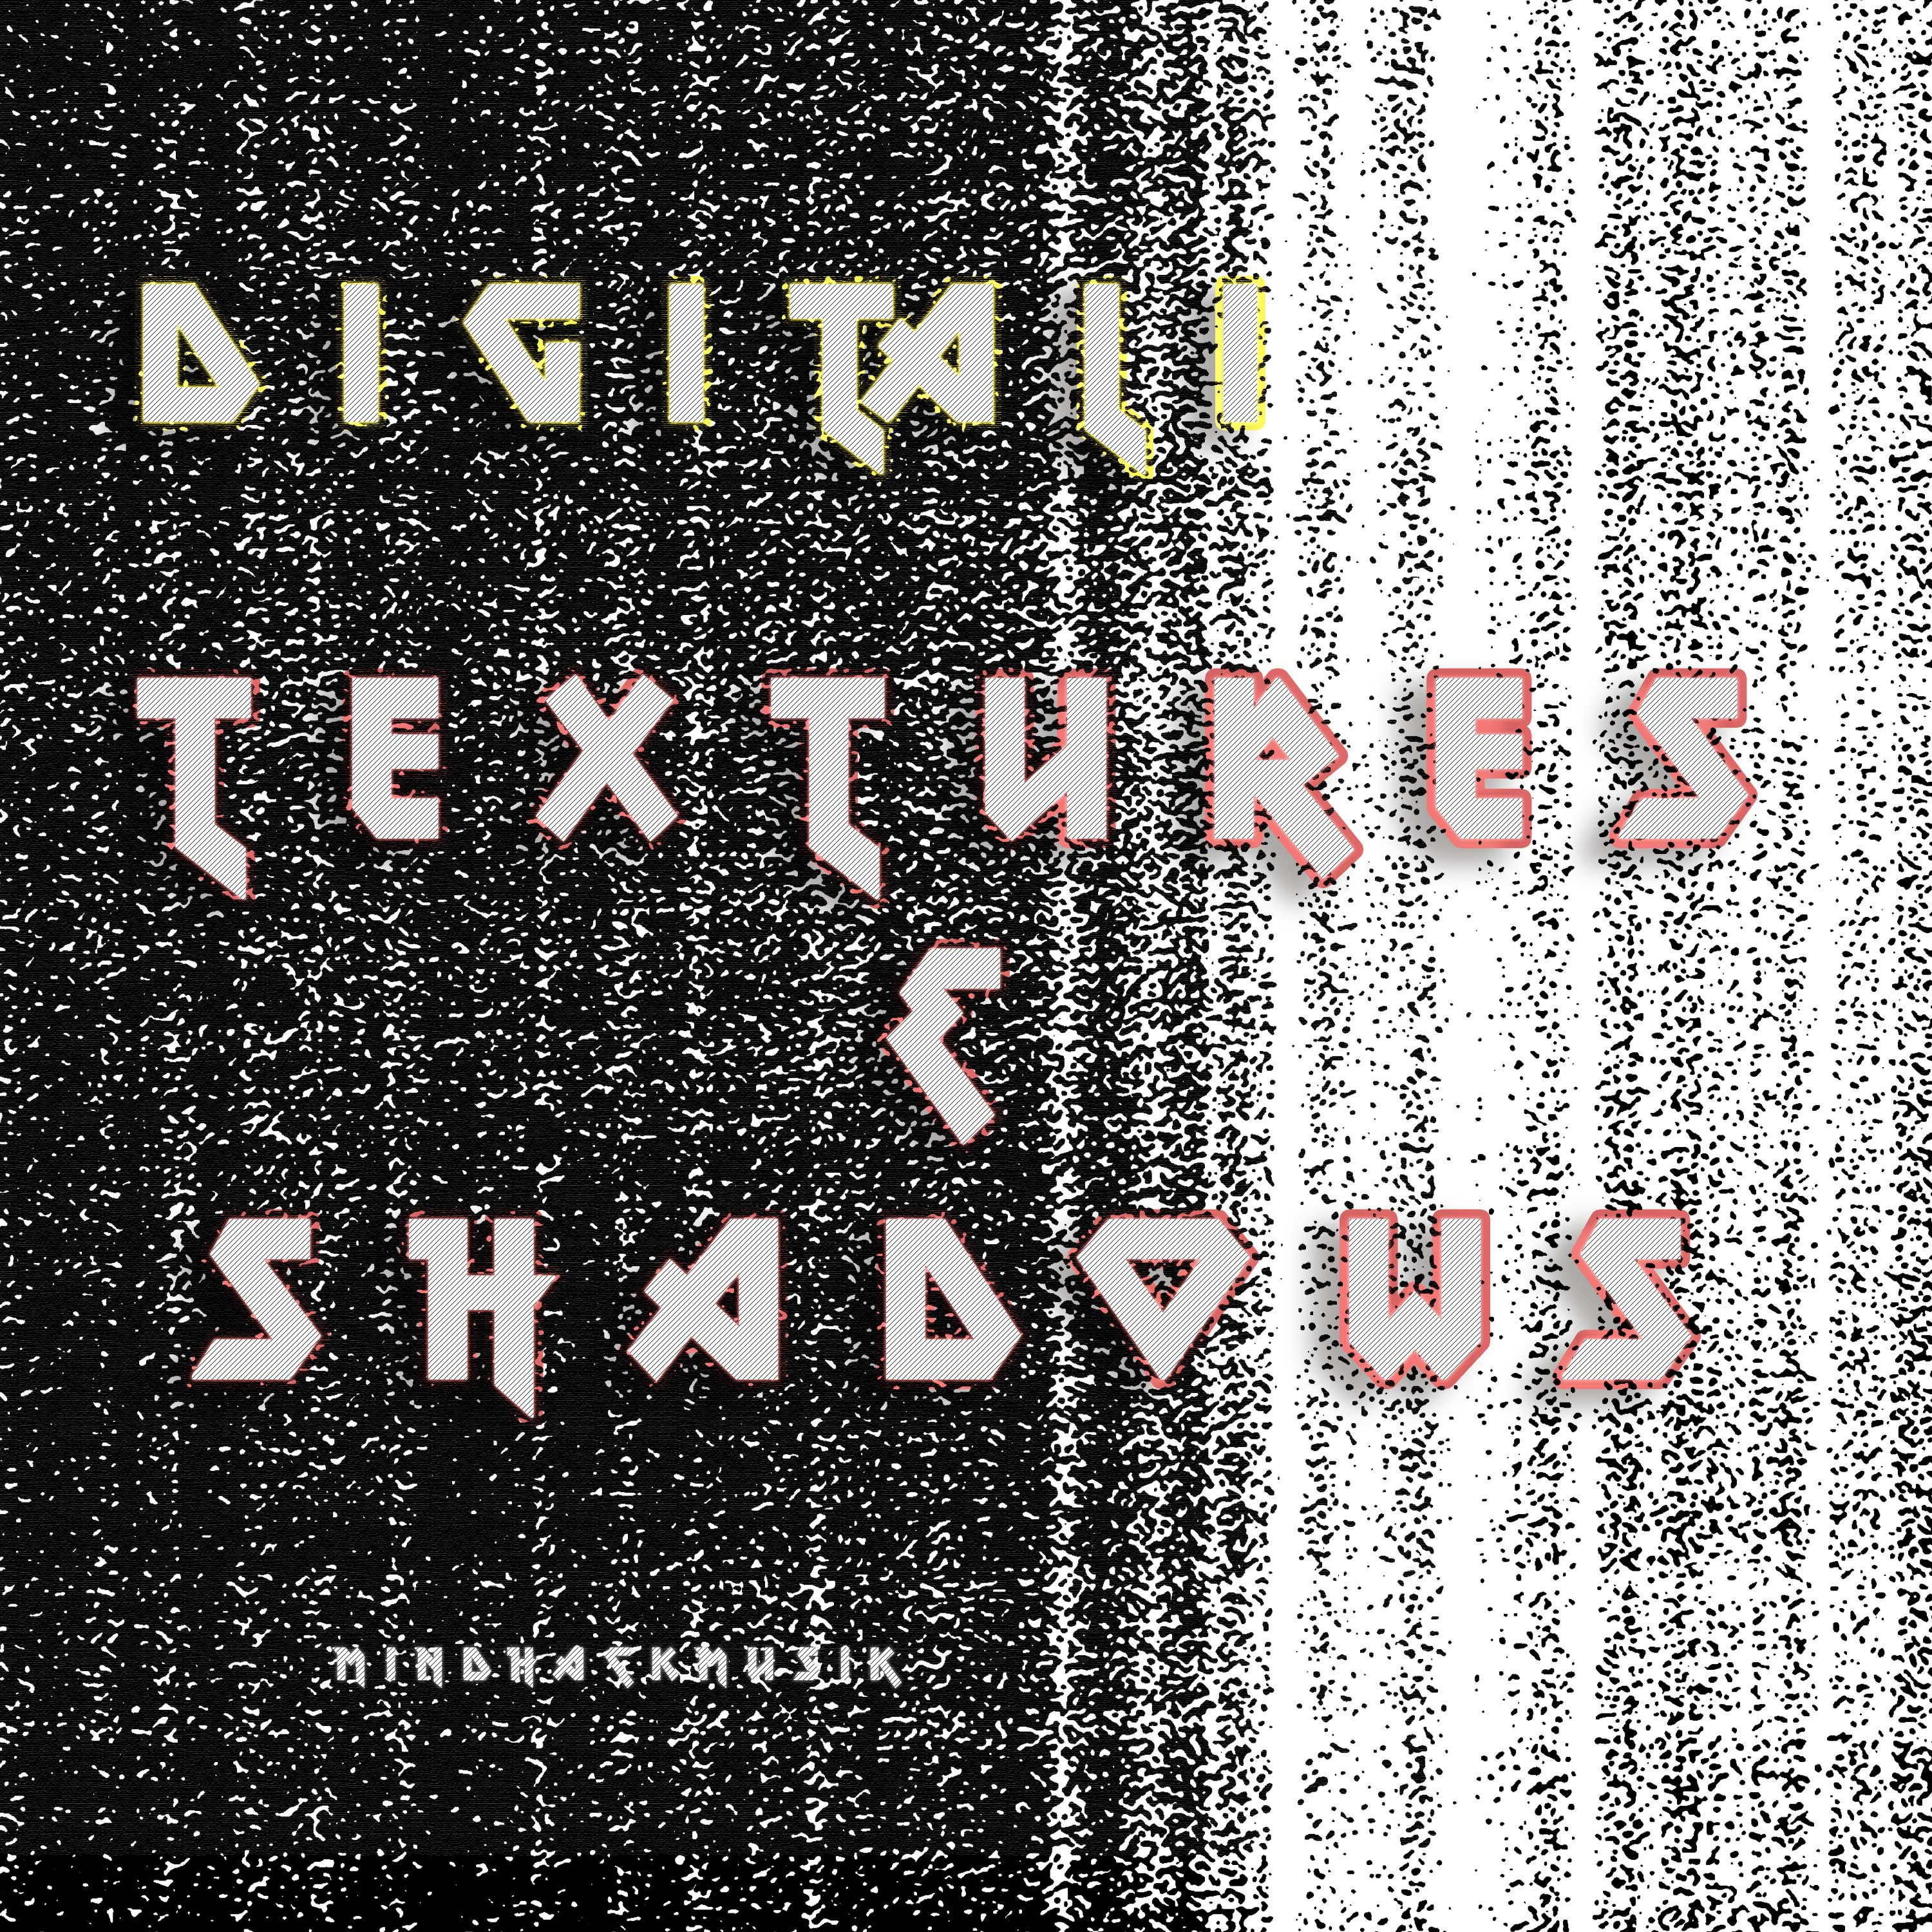 Textures & Shadows Image